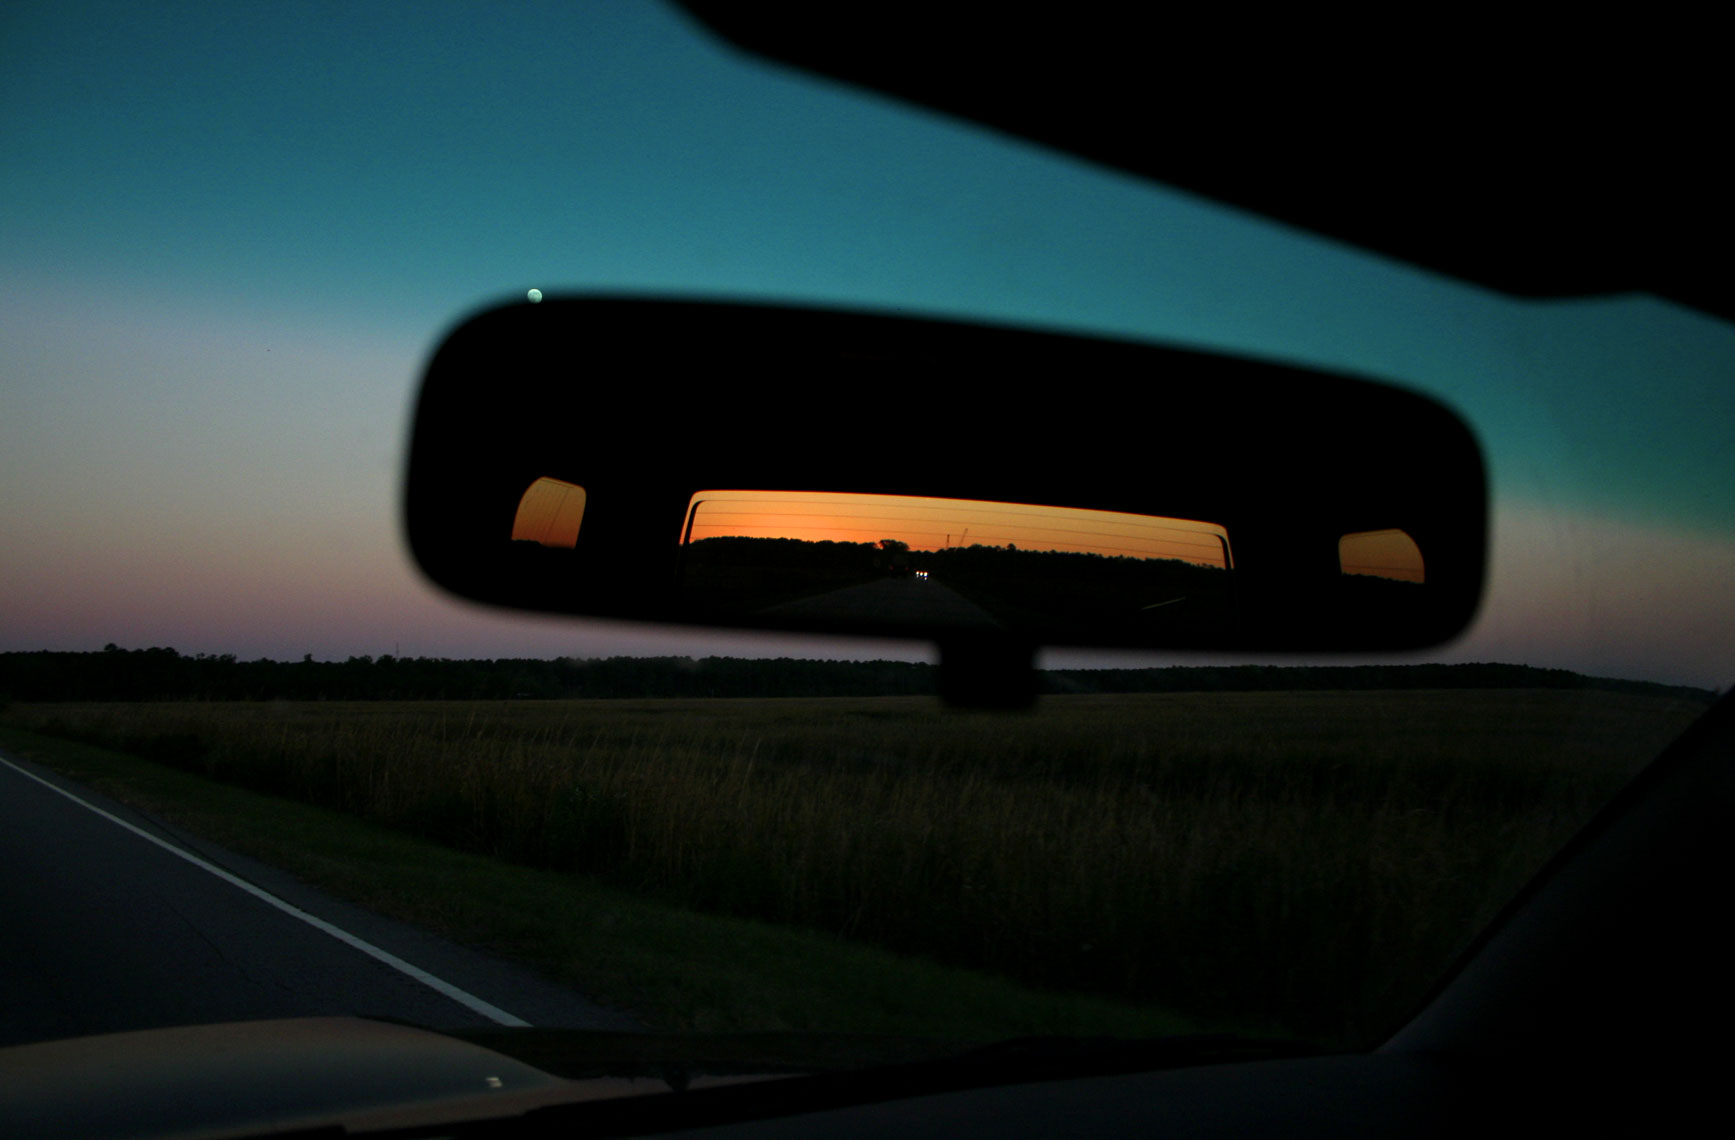 rear-view-mirror-moon